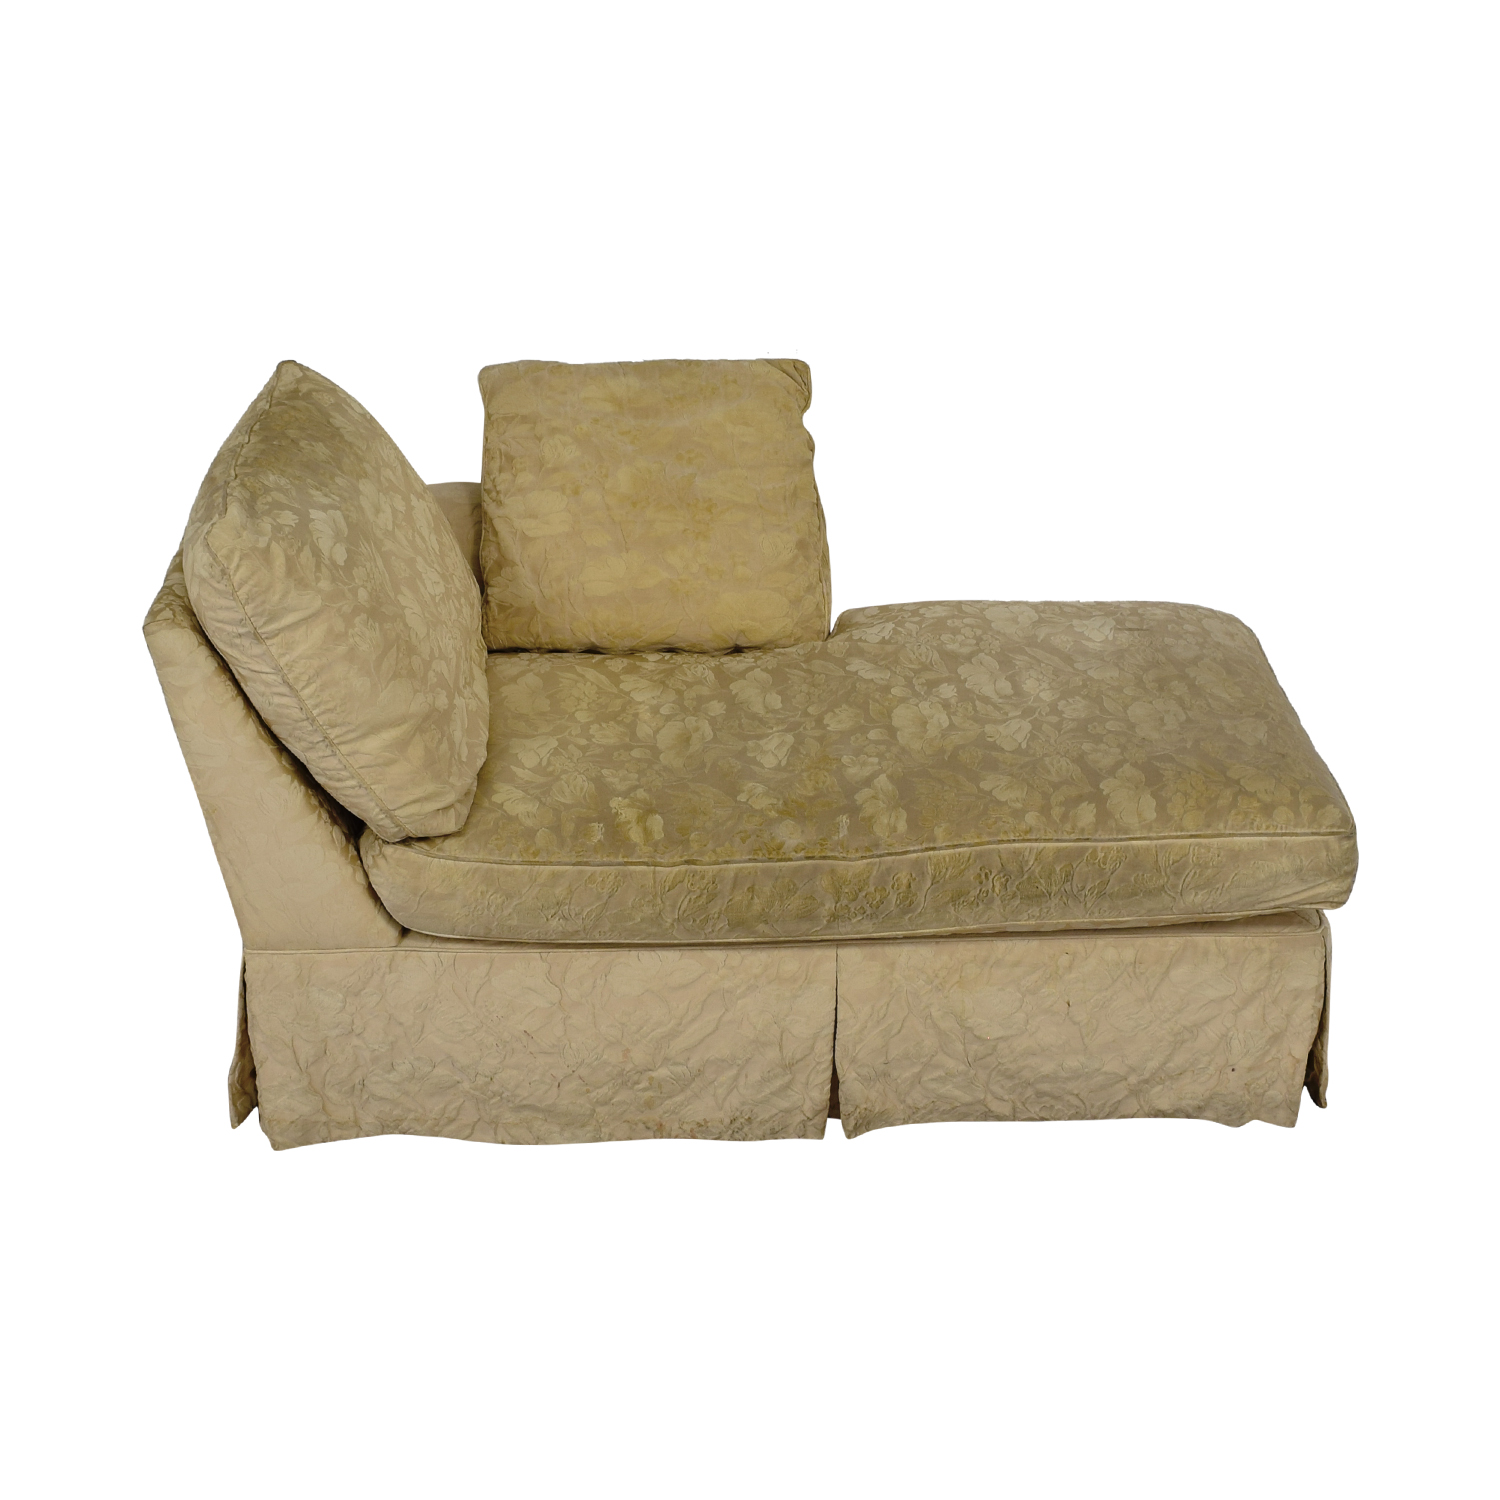 Jacquard Beige Skirted Chaise / Sofas